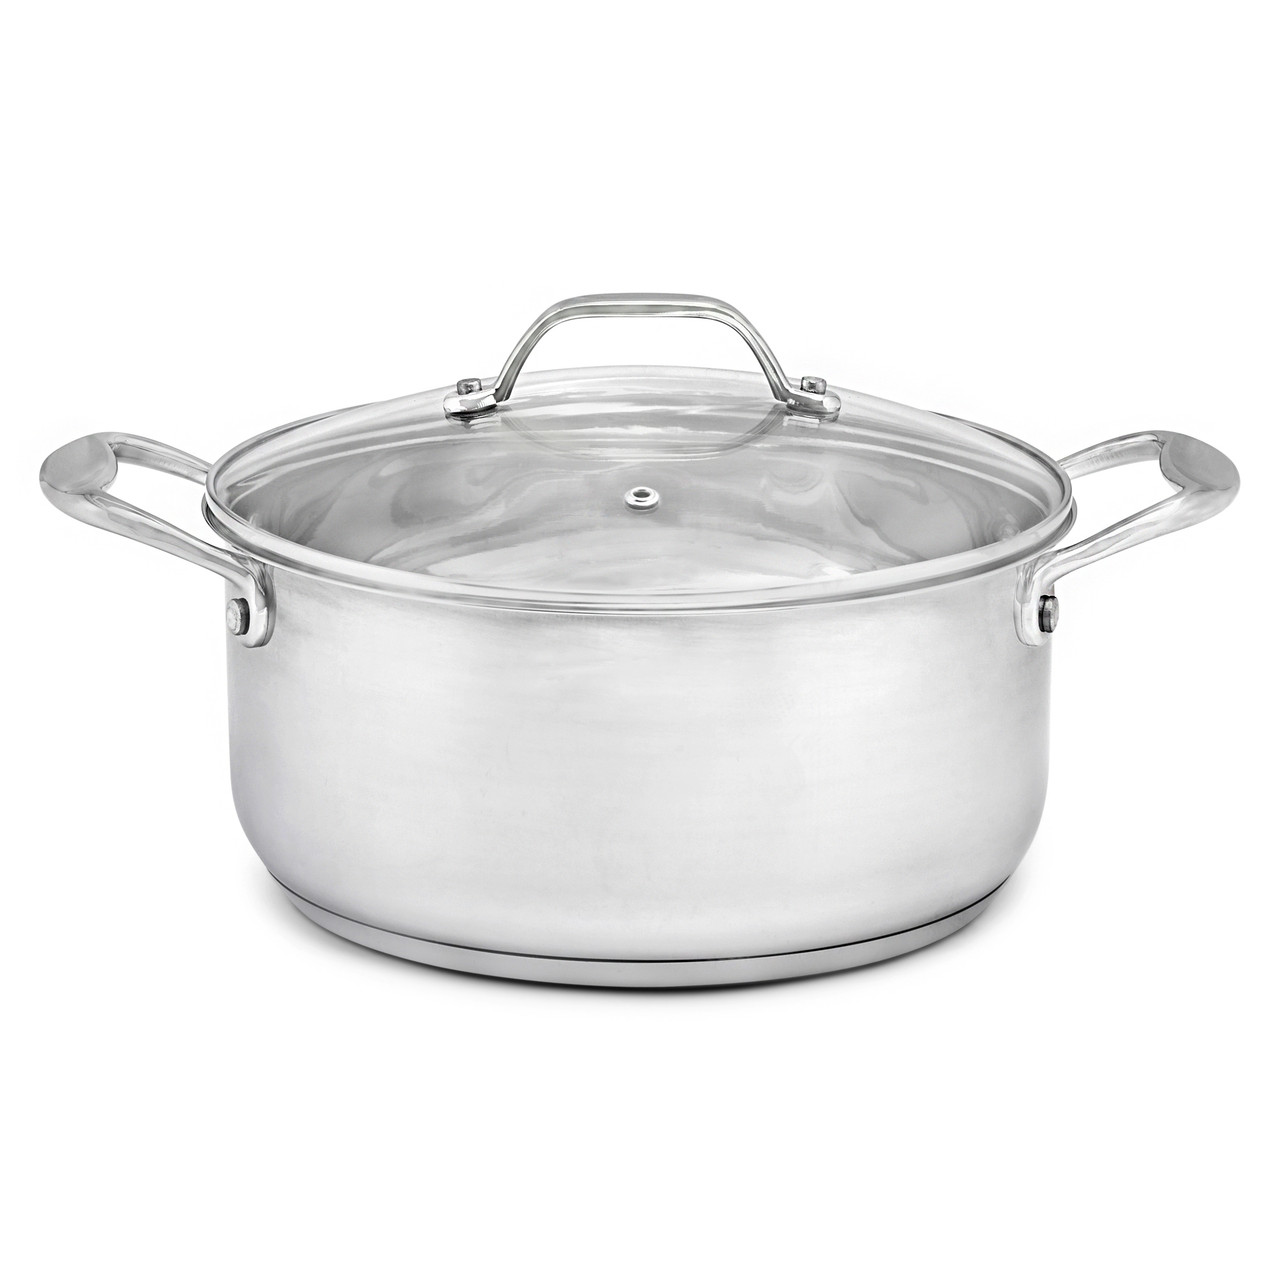 Westinghouse WH4P02SS 4 Piece Stainless Steel Pot & Pan Set - RRP $199.00